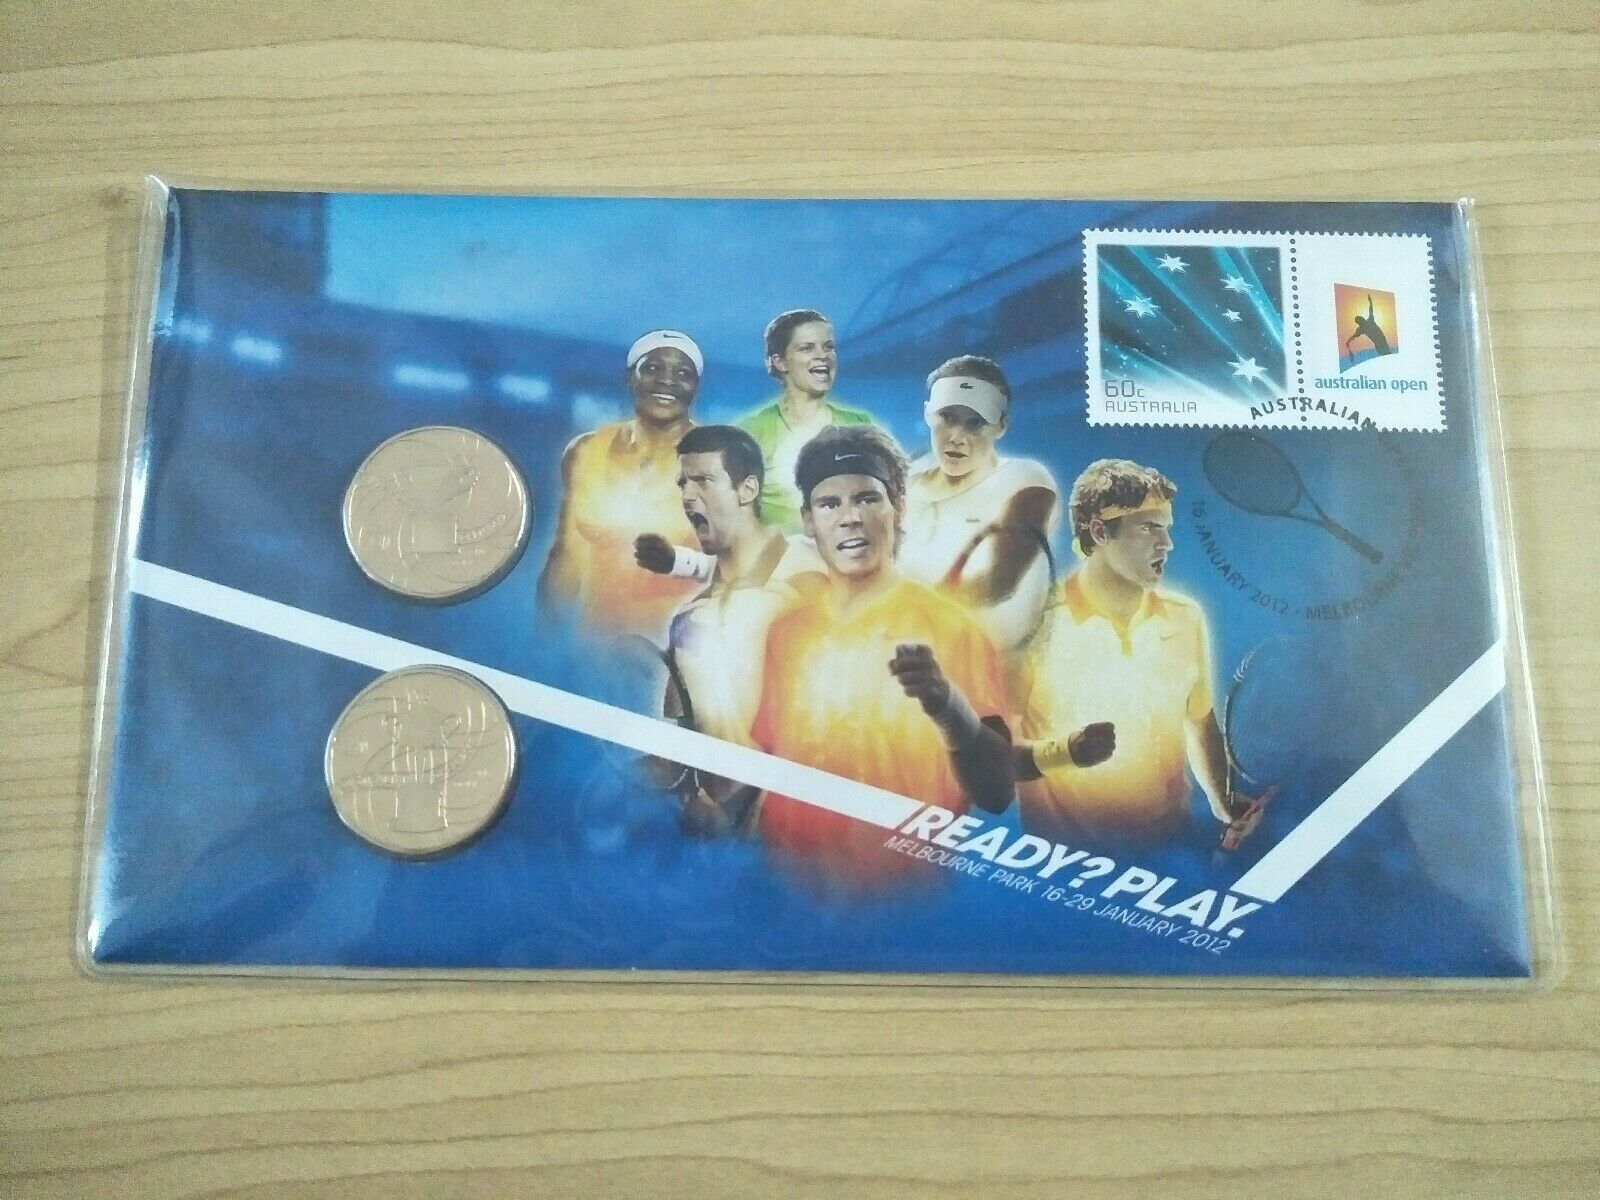 2012 $1 Australian Open Limited Edition PNC  750/15000